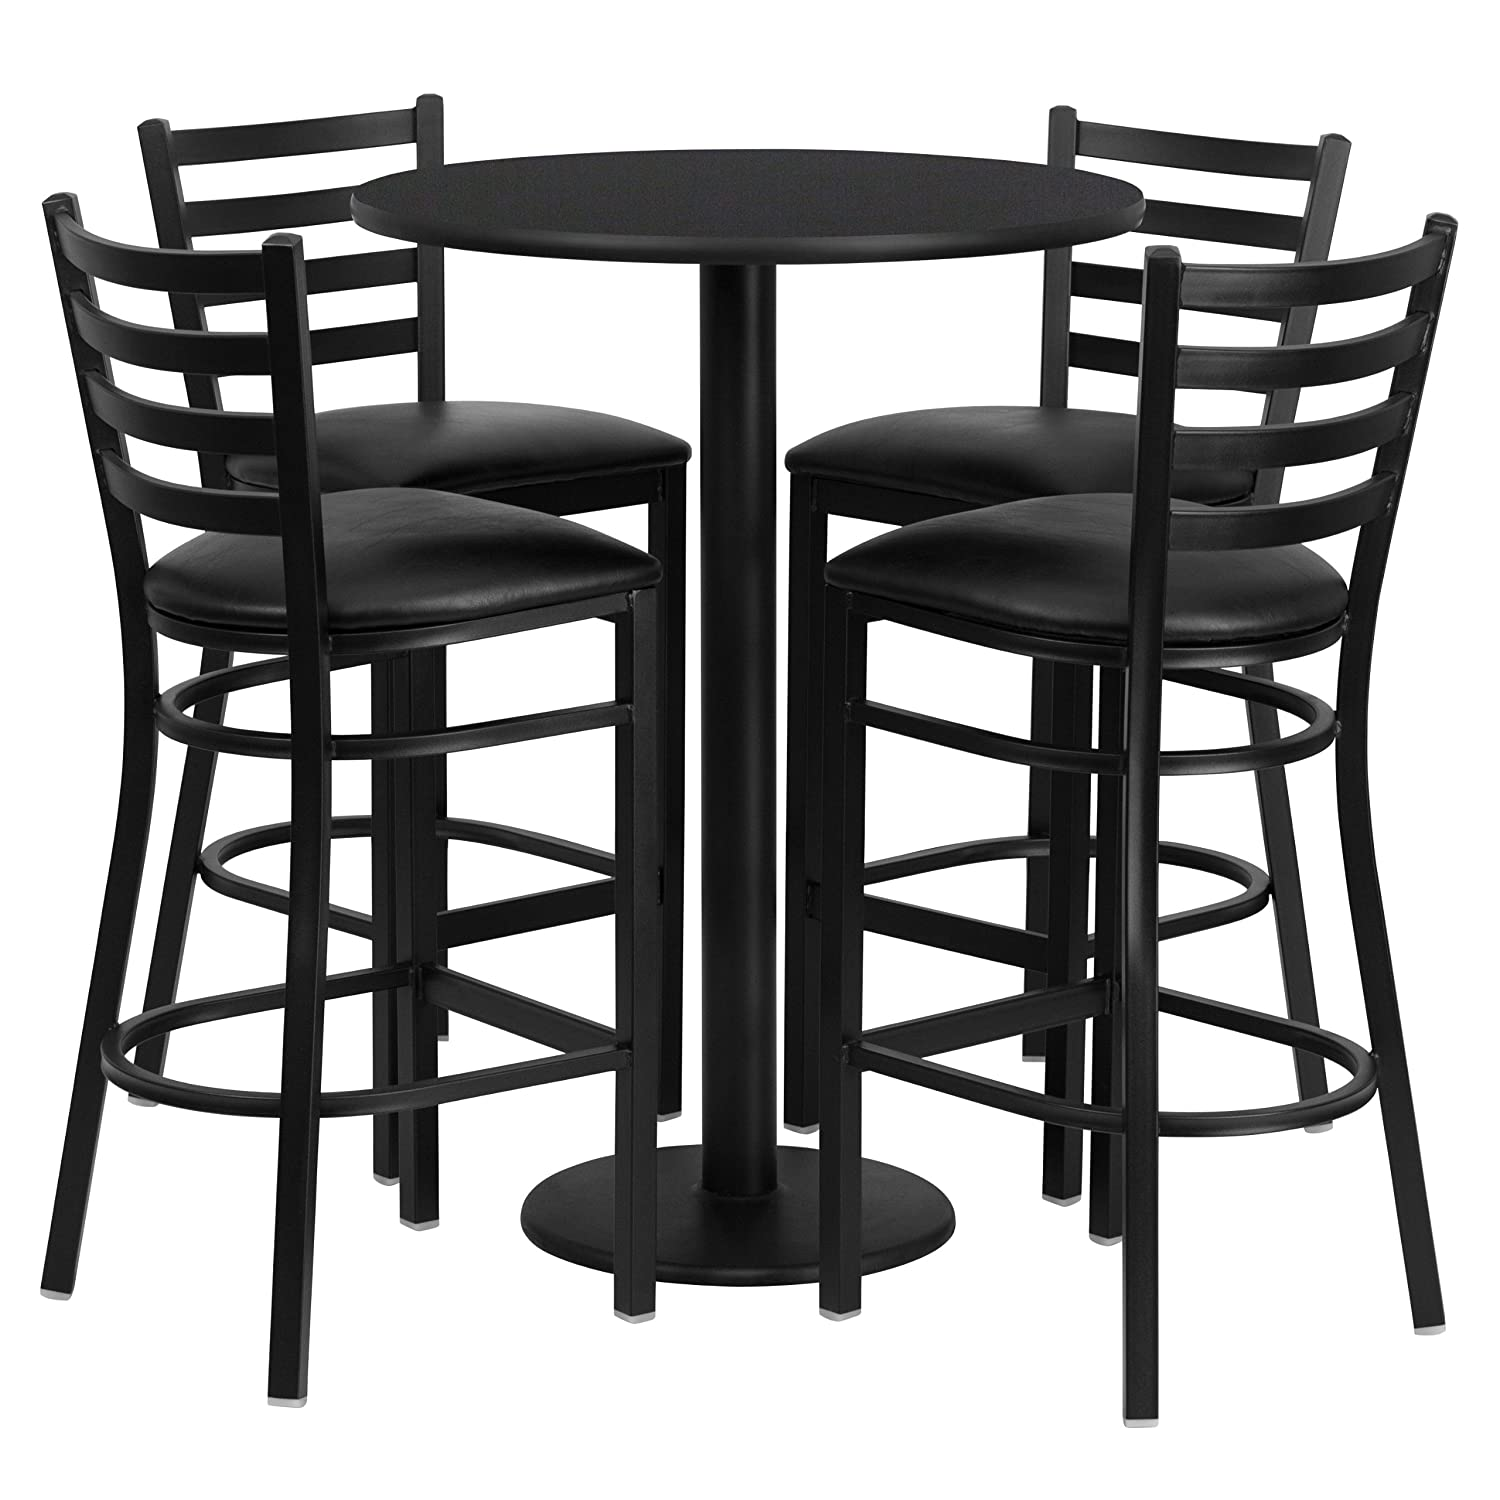 Amazon.com Flash Furniture 30u0027u0027 Round Black Laminate Table Set with 4 Ladder Back Metal Barstools - Black Vinyl Seat Kitchen u0026 Dining  sc 1 st  Amazon.com : kitchen bar stools and table sets - pezcame.com